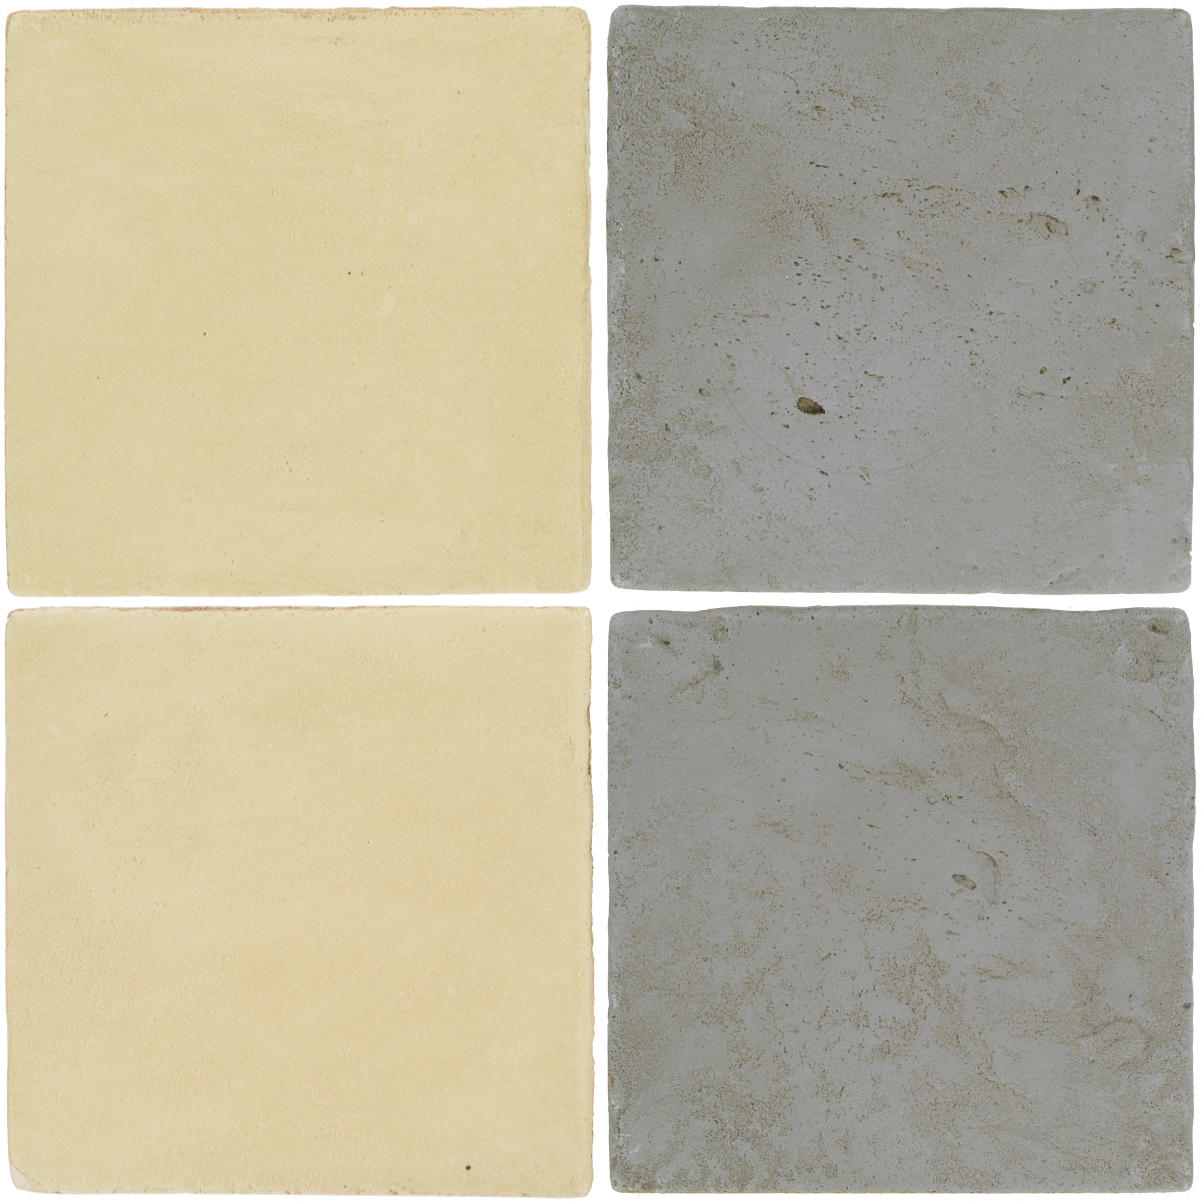 Pedralbes Antique Terracotta  2 Color Combinations  OHS-PGPW Pergamino White + VTG-PGOG Oyster Grey